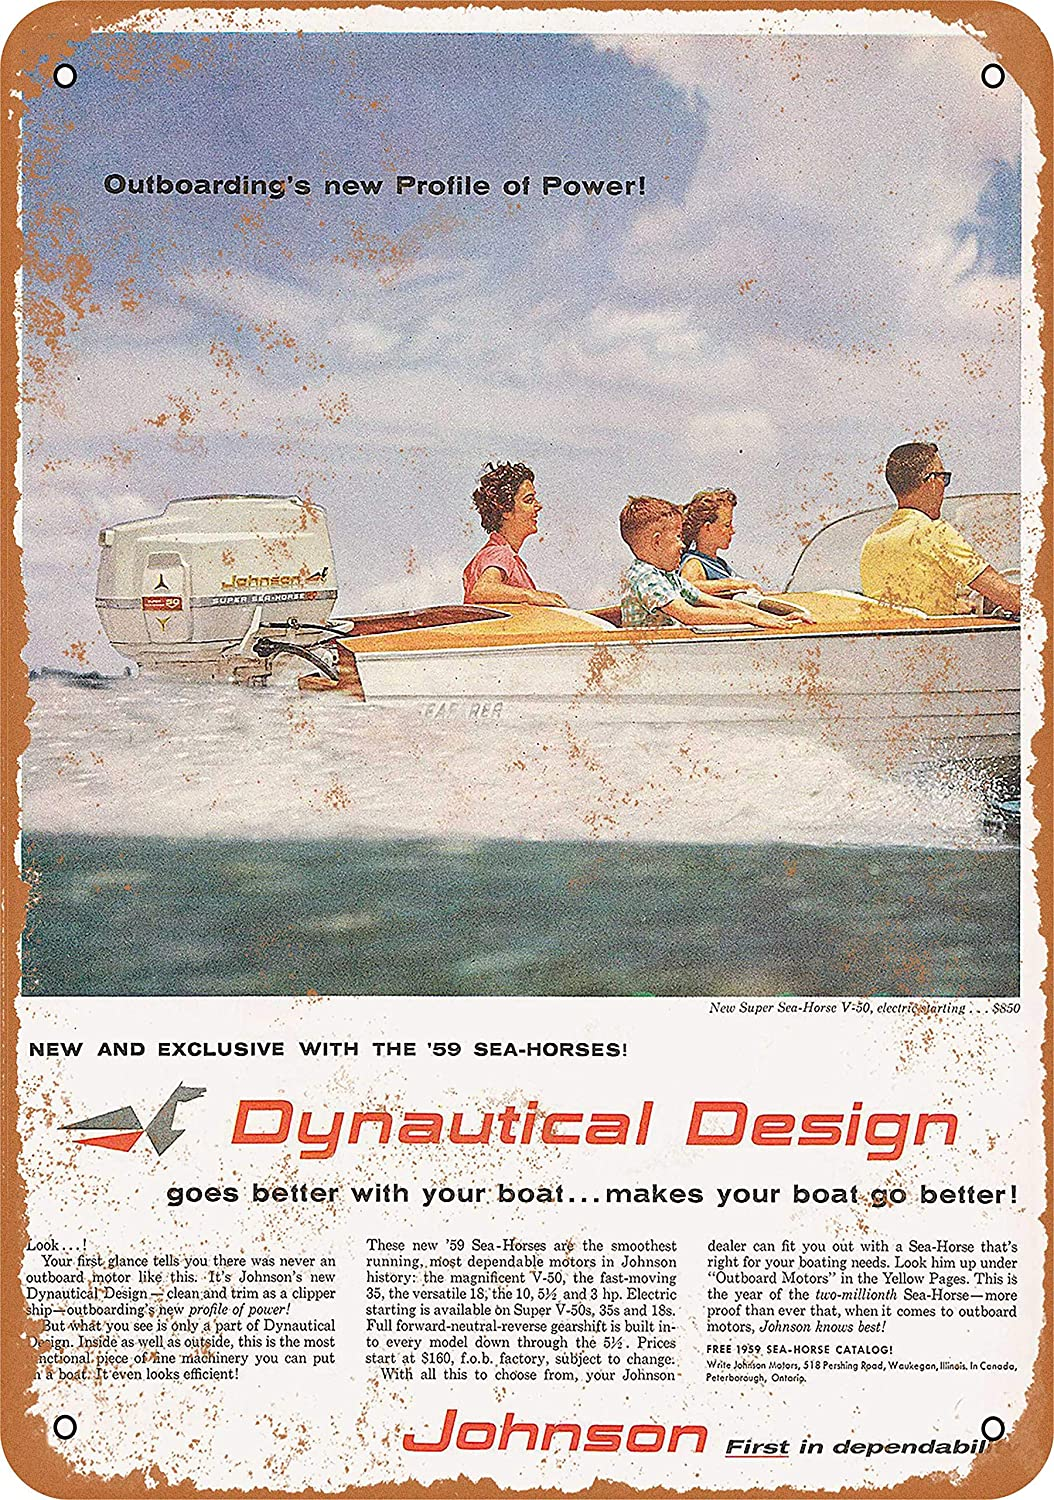 Amazon.com: Wall-Color 10 x 14 Metal Sign - 1959 Johnson Outboard Motors - Vintage Look: Home & Kitchen